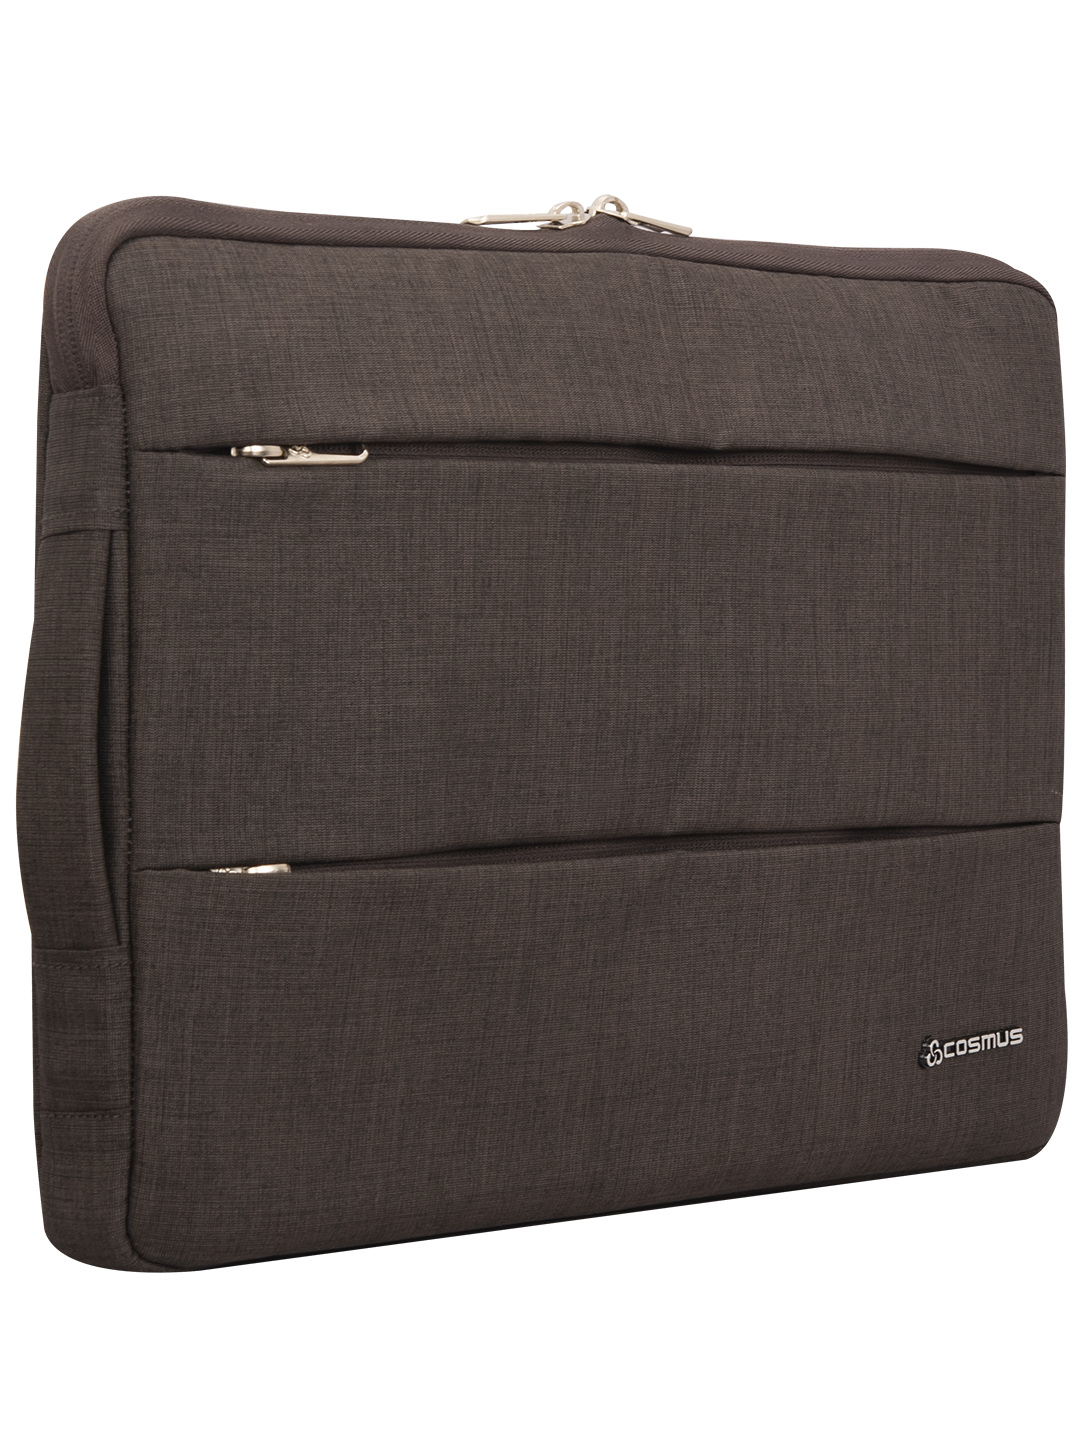 Cosmus Impact dark Grey Laptop Sleeve up to 15.6 inches